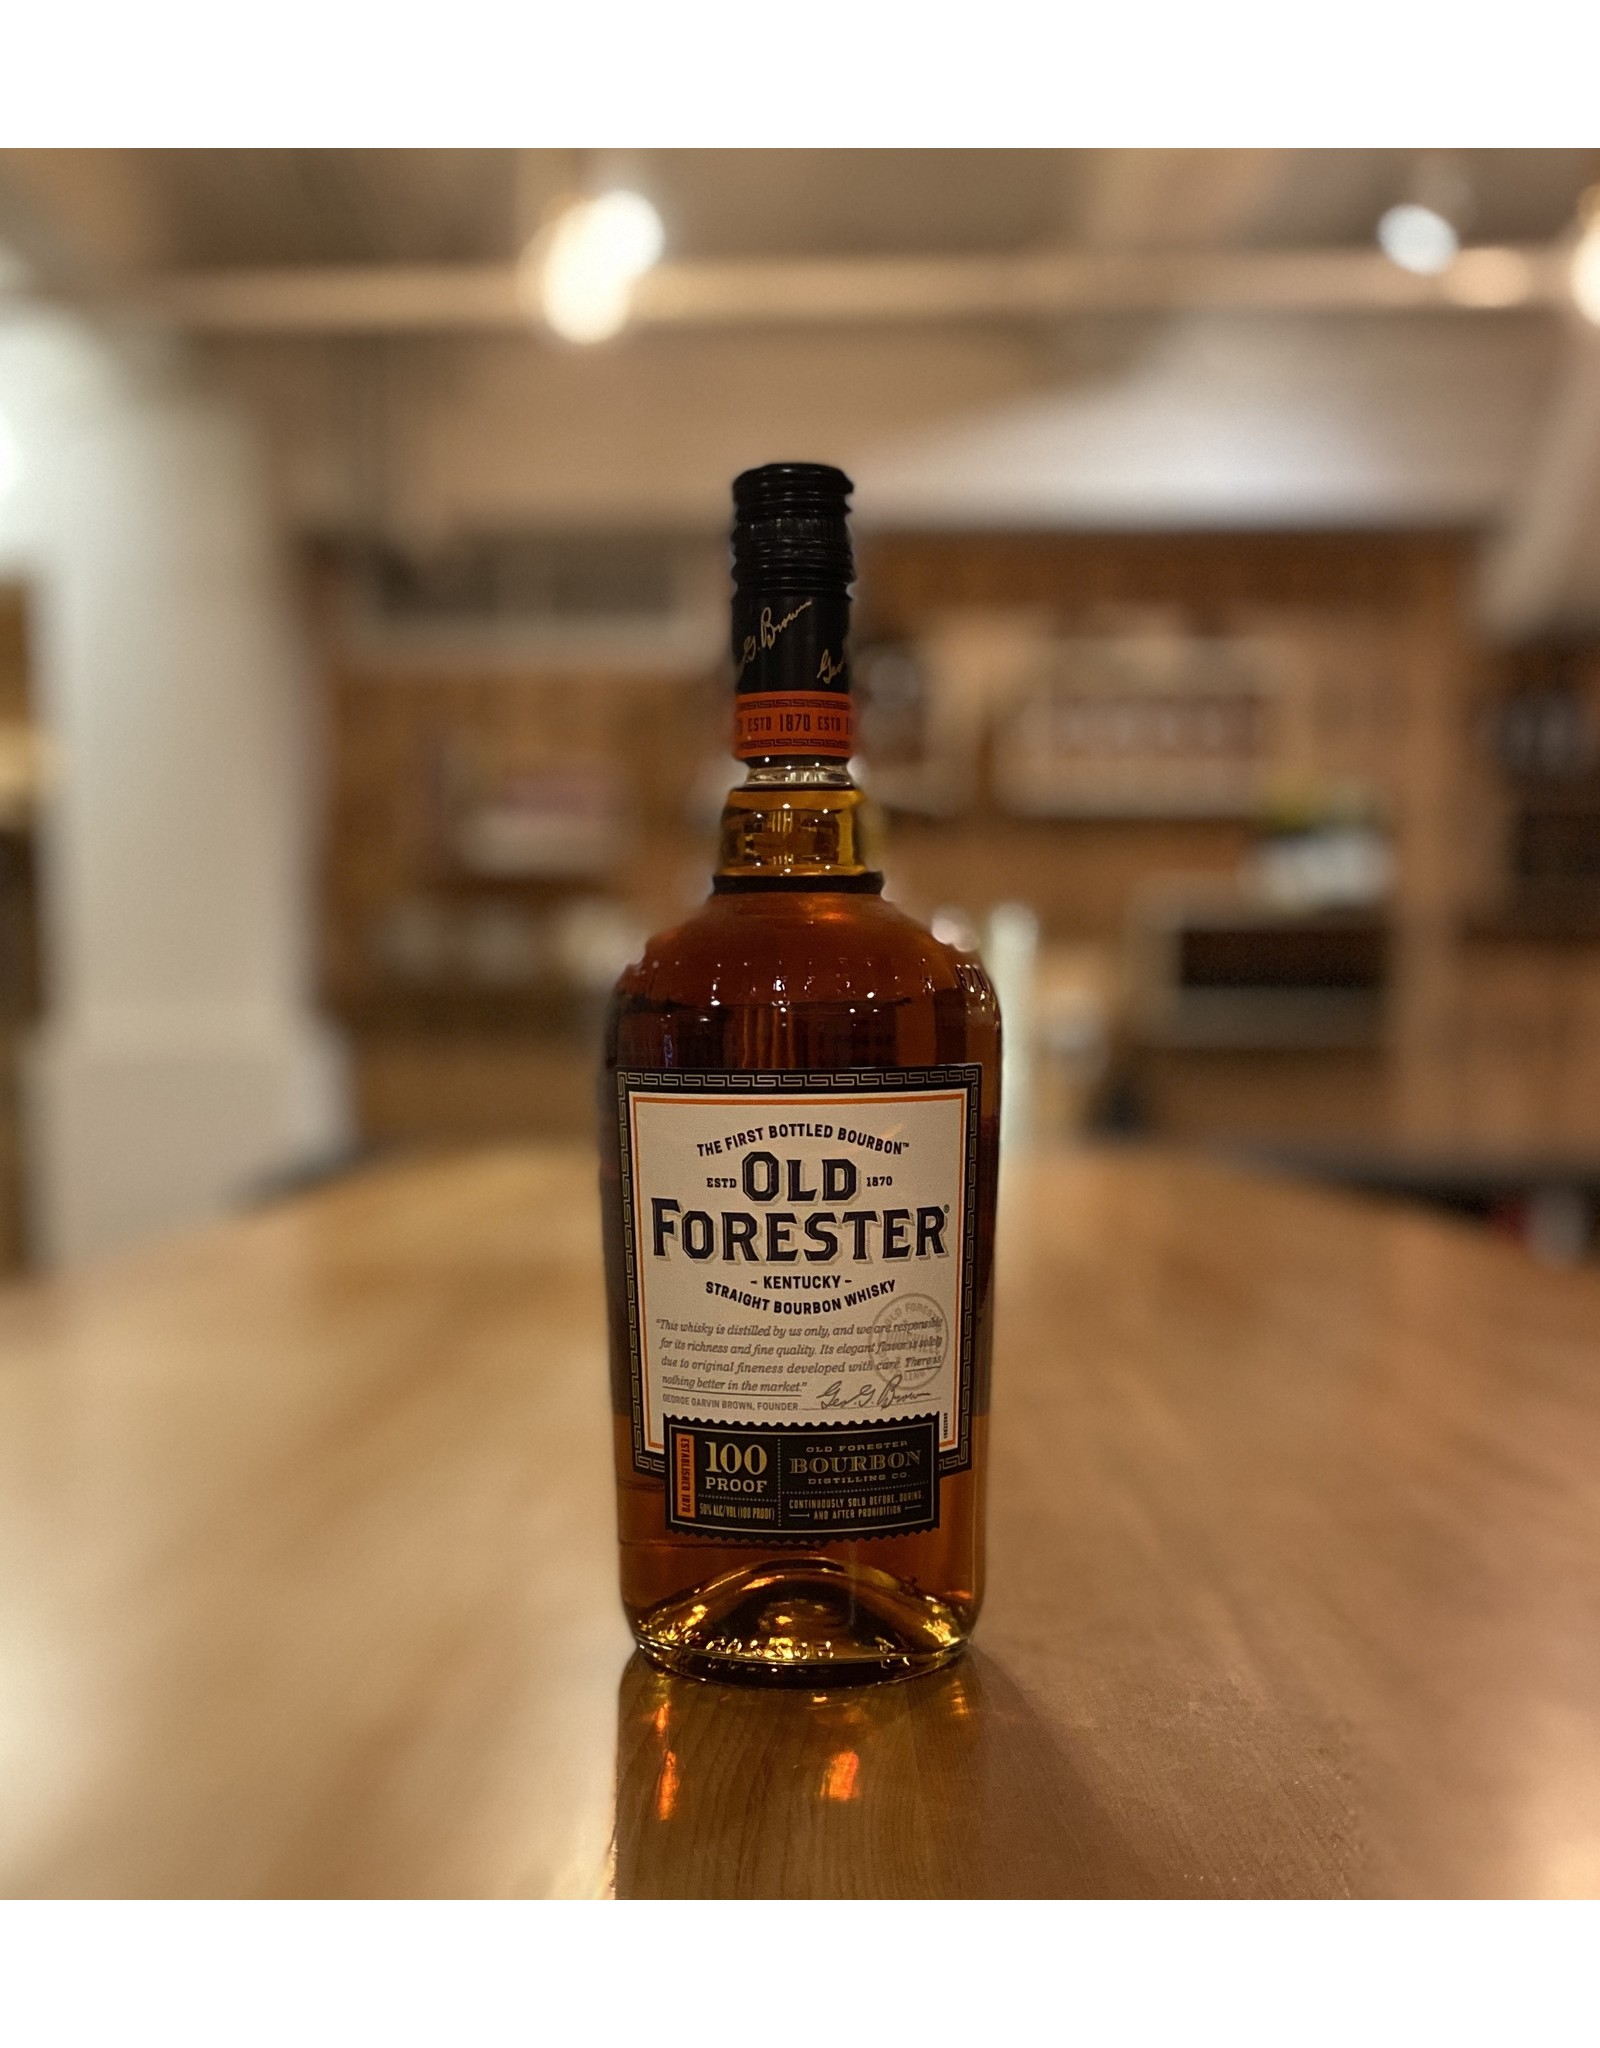 Bourbon Old Forester 100 Proof Straight Bourbon Whiskey - Louisville, KY